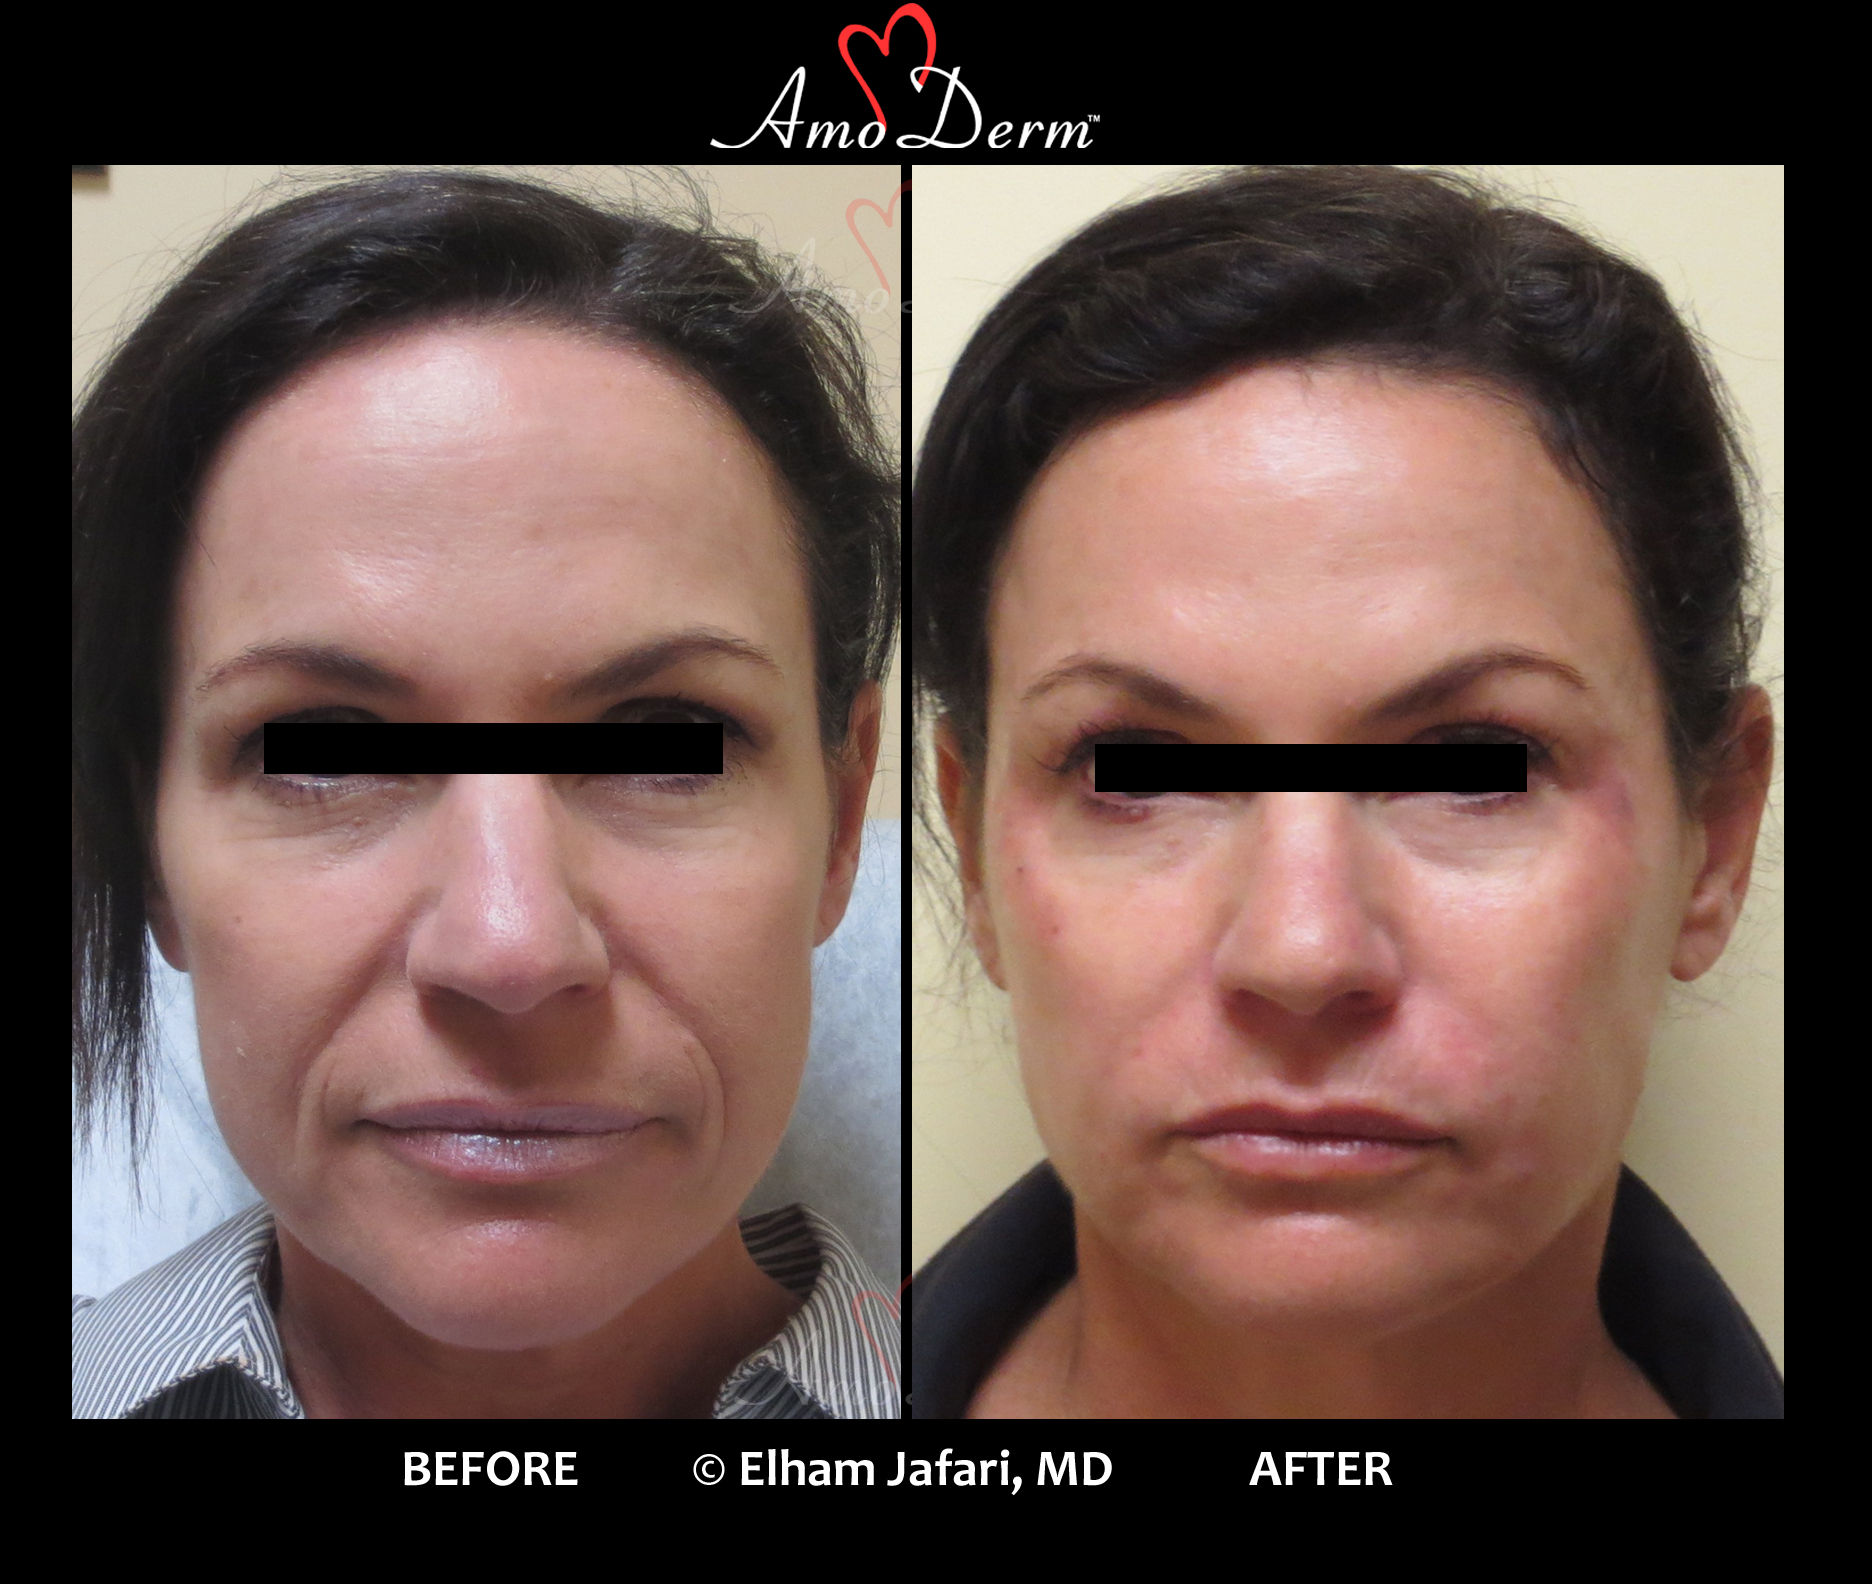 Whole-face rejuvenation (Liquid FaceLift) with dermal filler injection